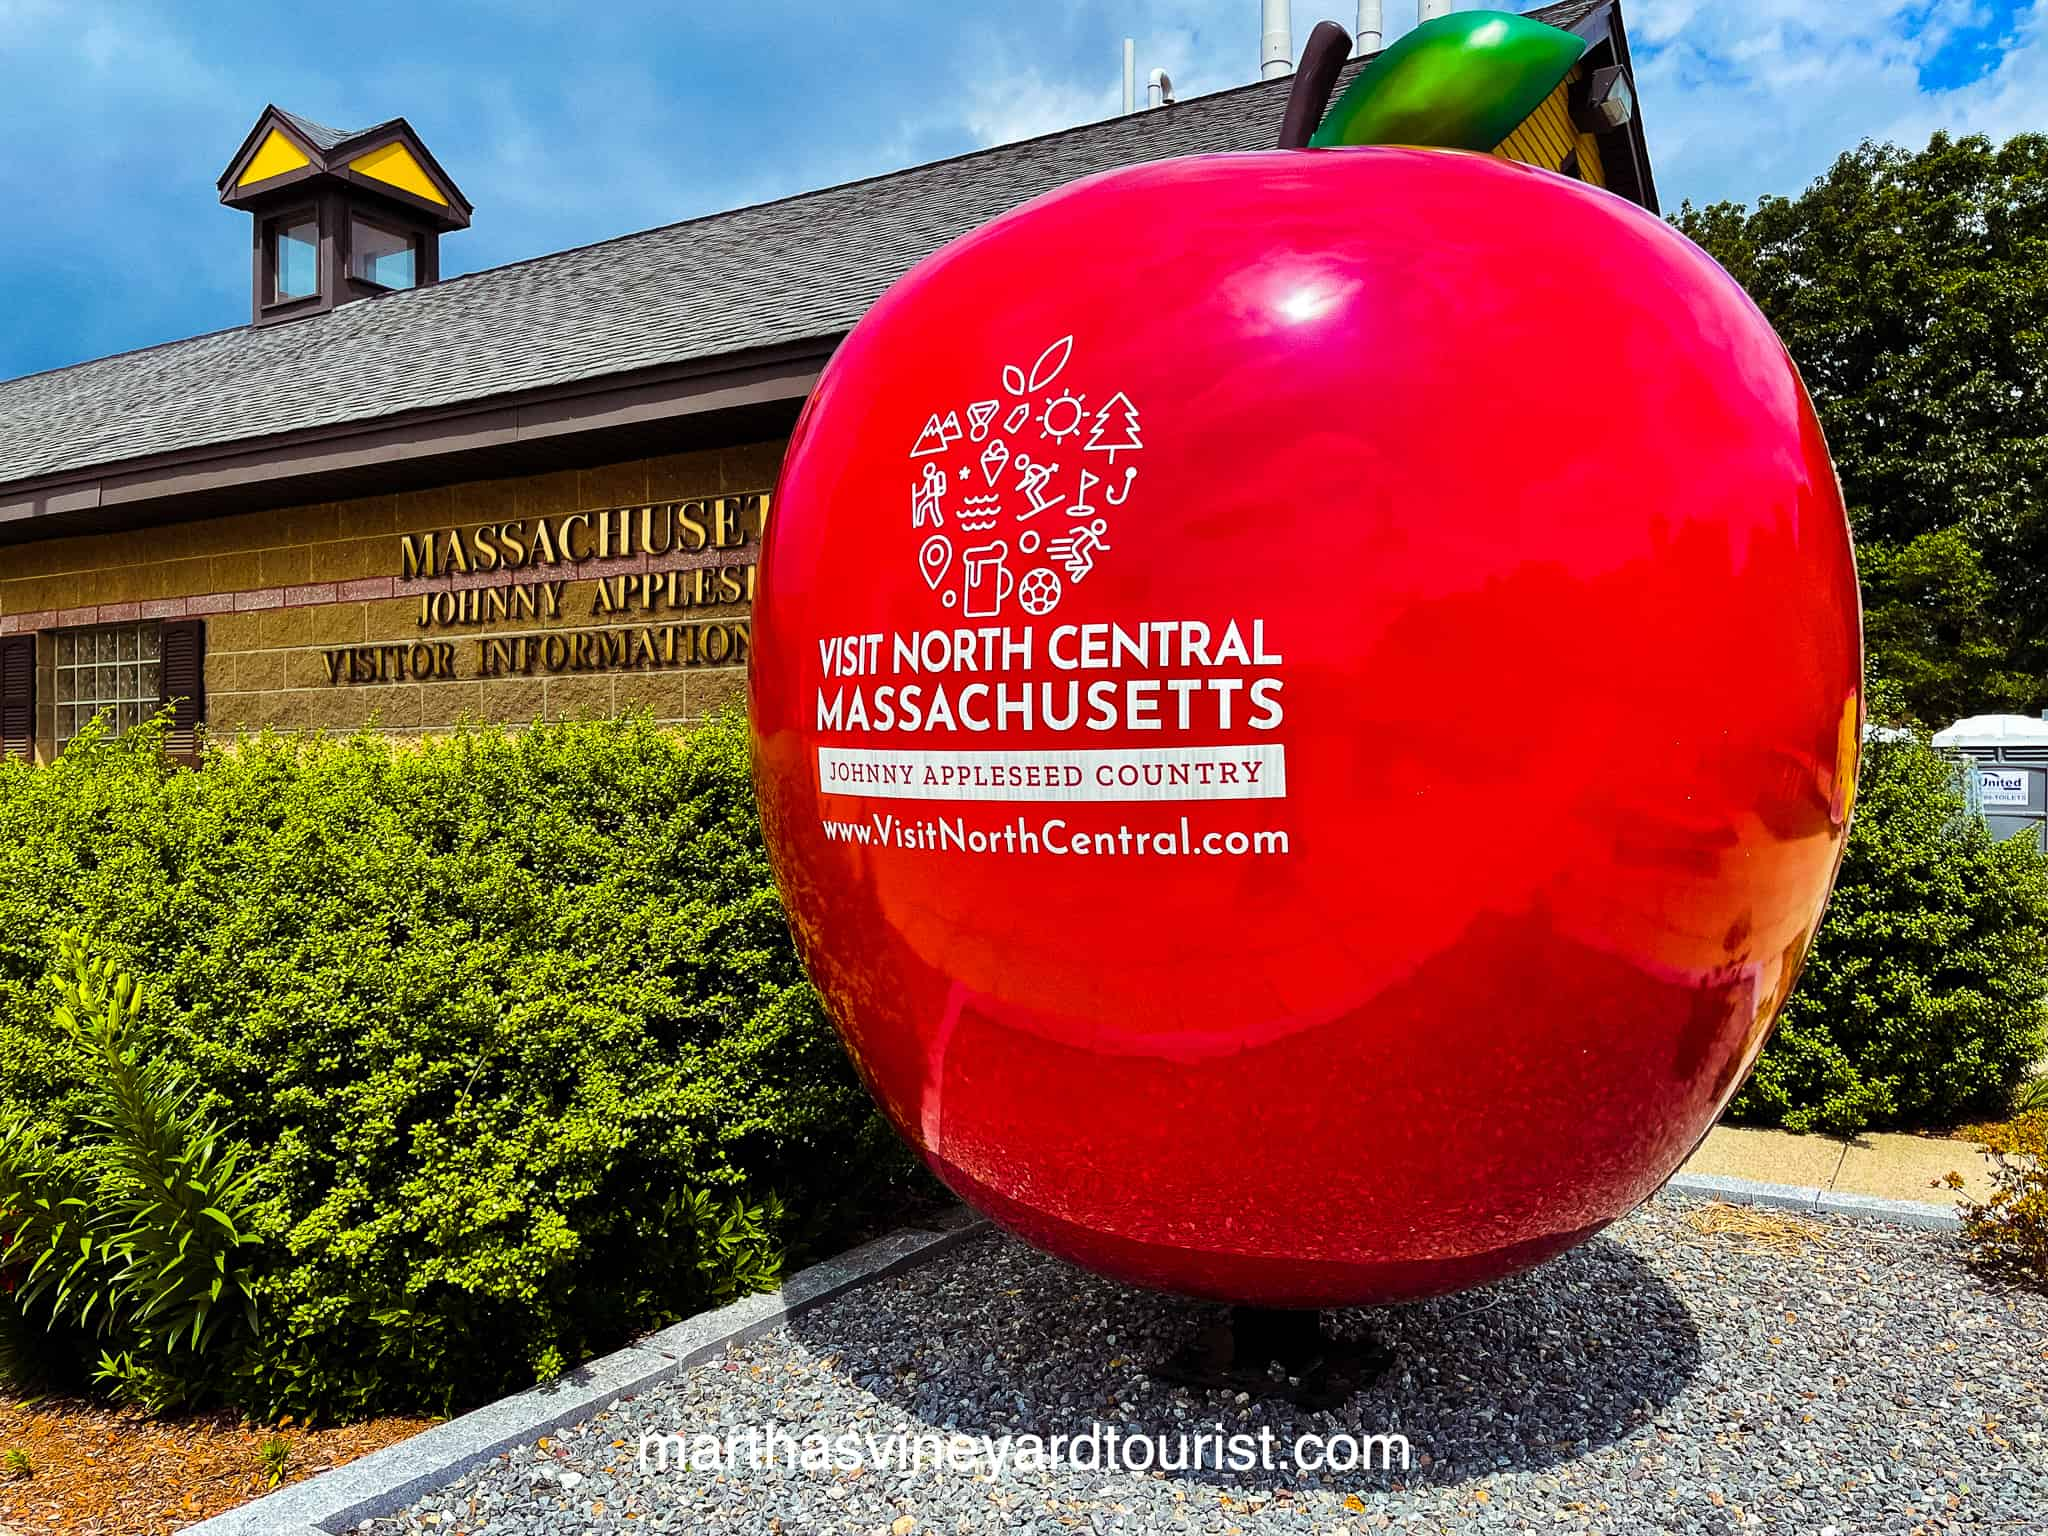 red apple outside the North Central Massachusetts visitor centre